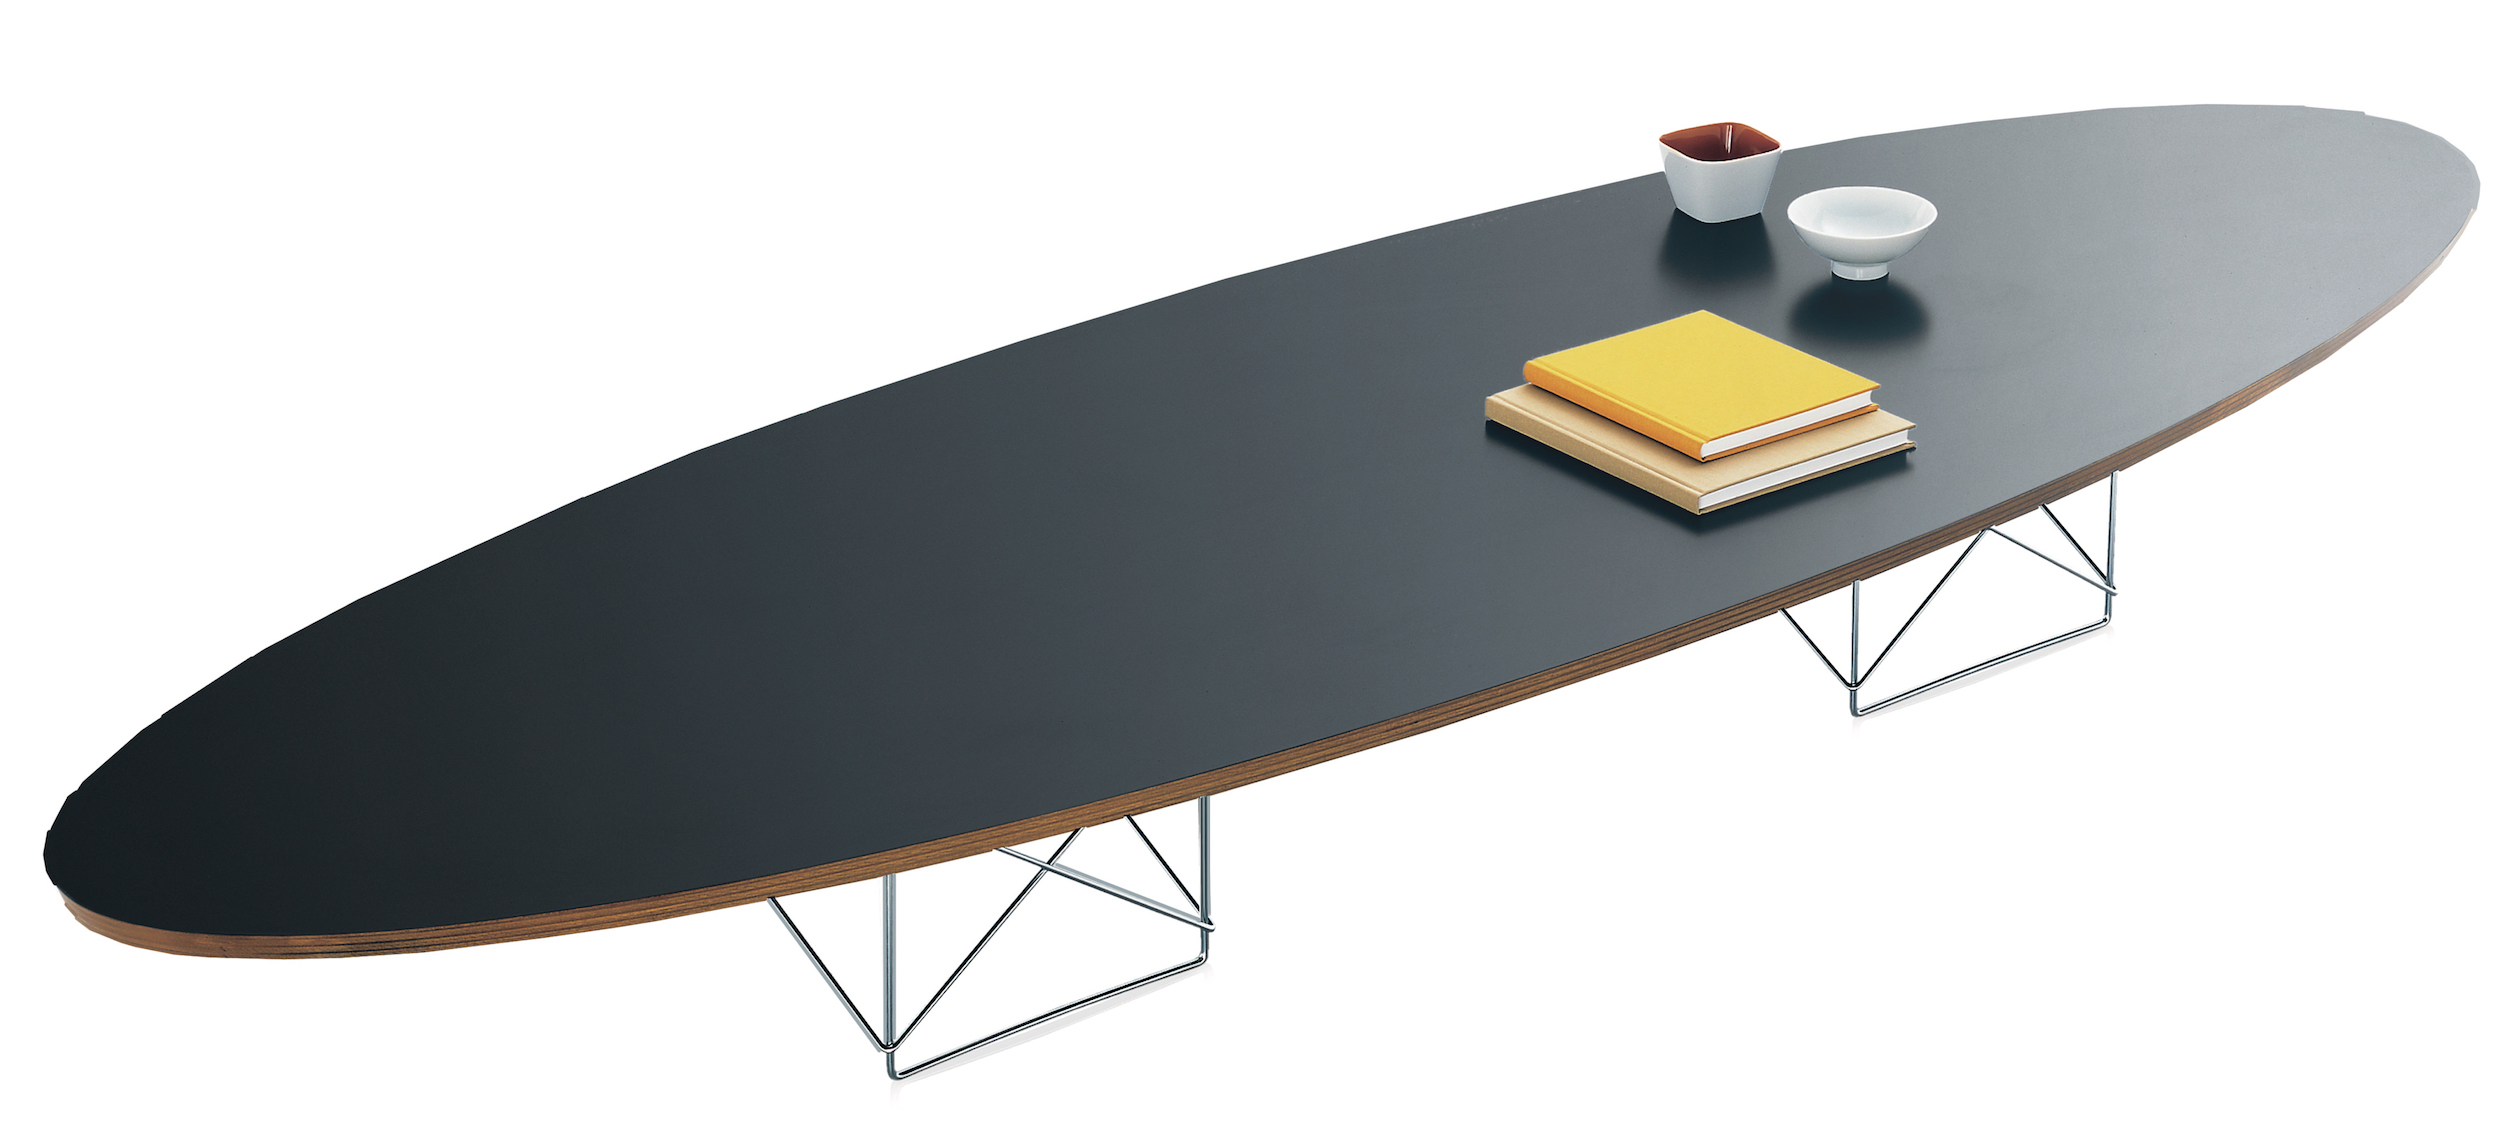 Eames Surfboard Coffee Table.Vitra Elliptical Table Etr Design Charles And Ray Eames 1951